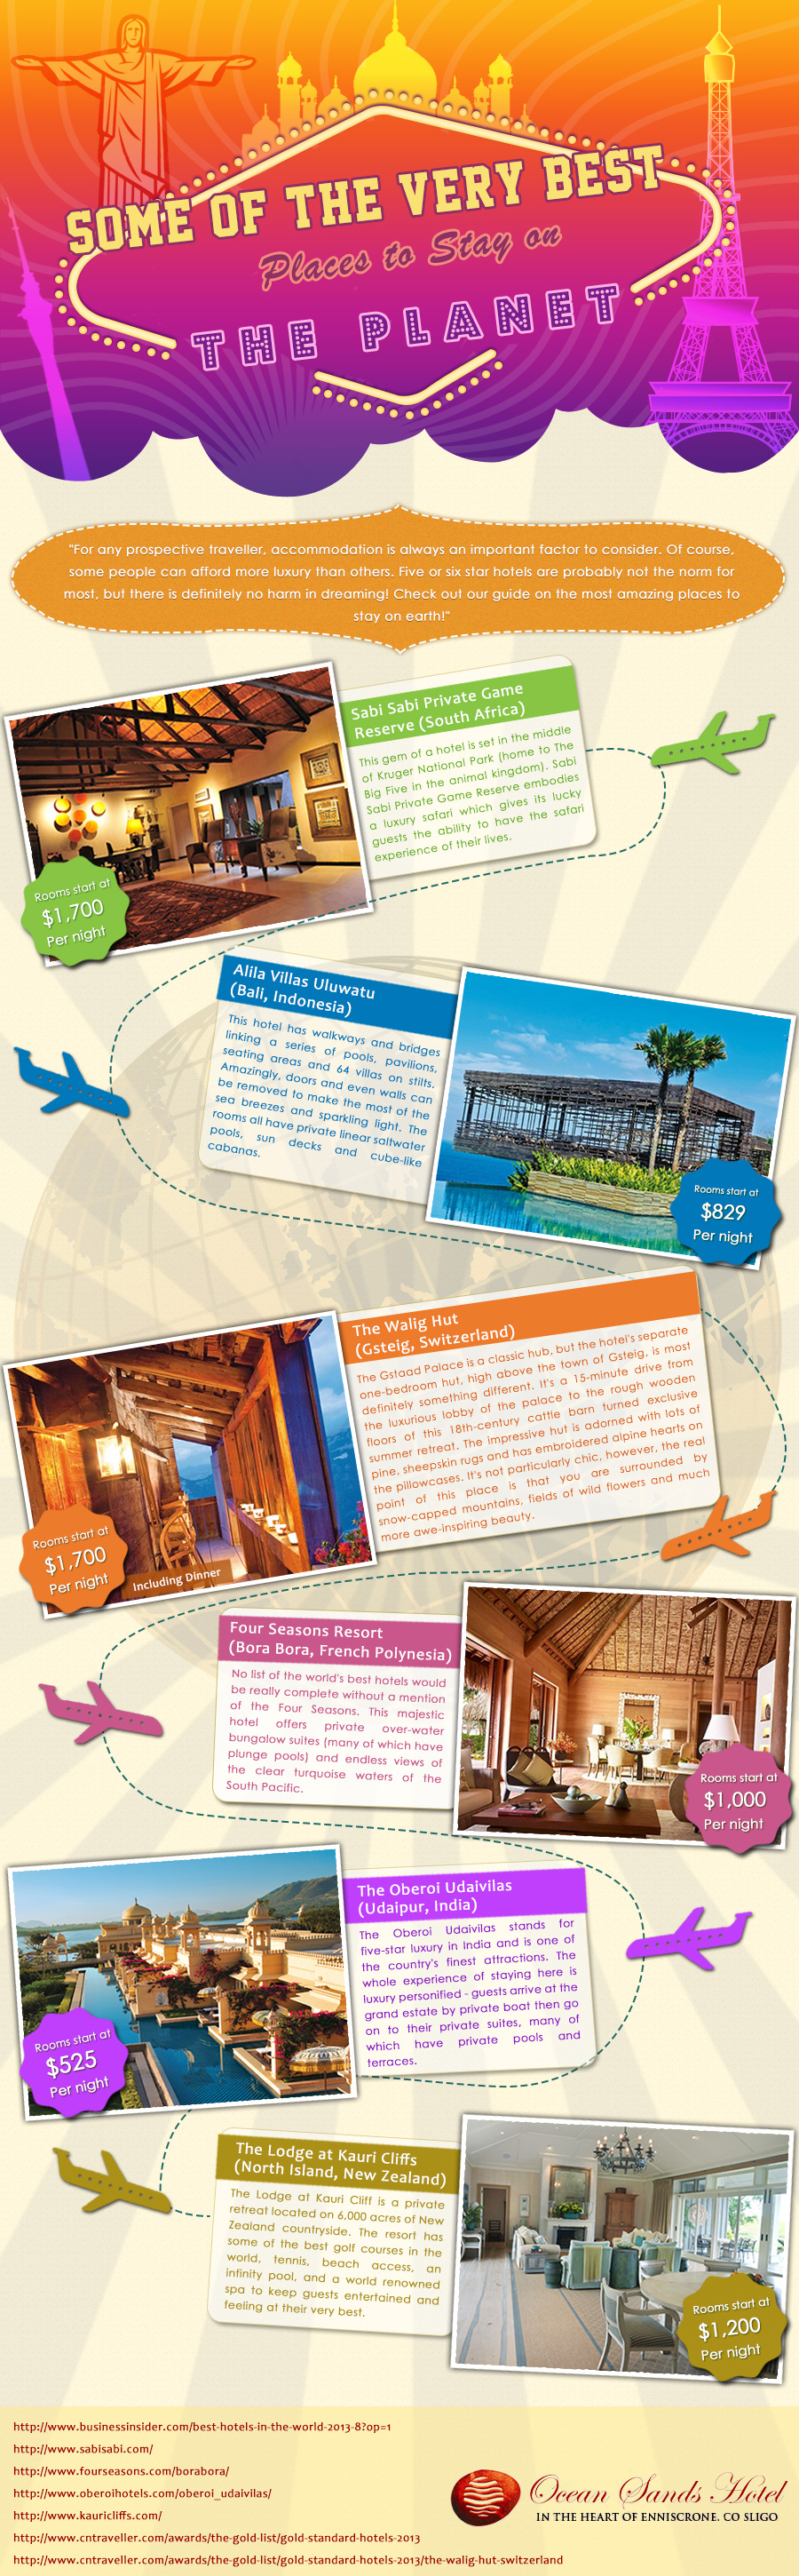 best-places-to-stay-on-the-planet-infographic(1)